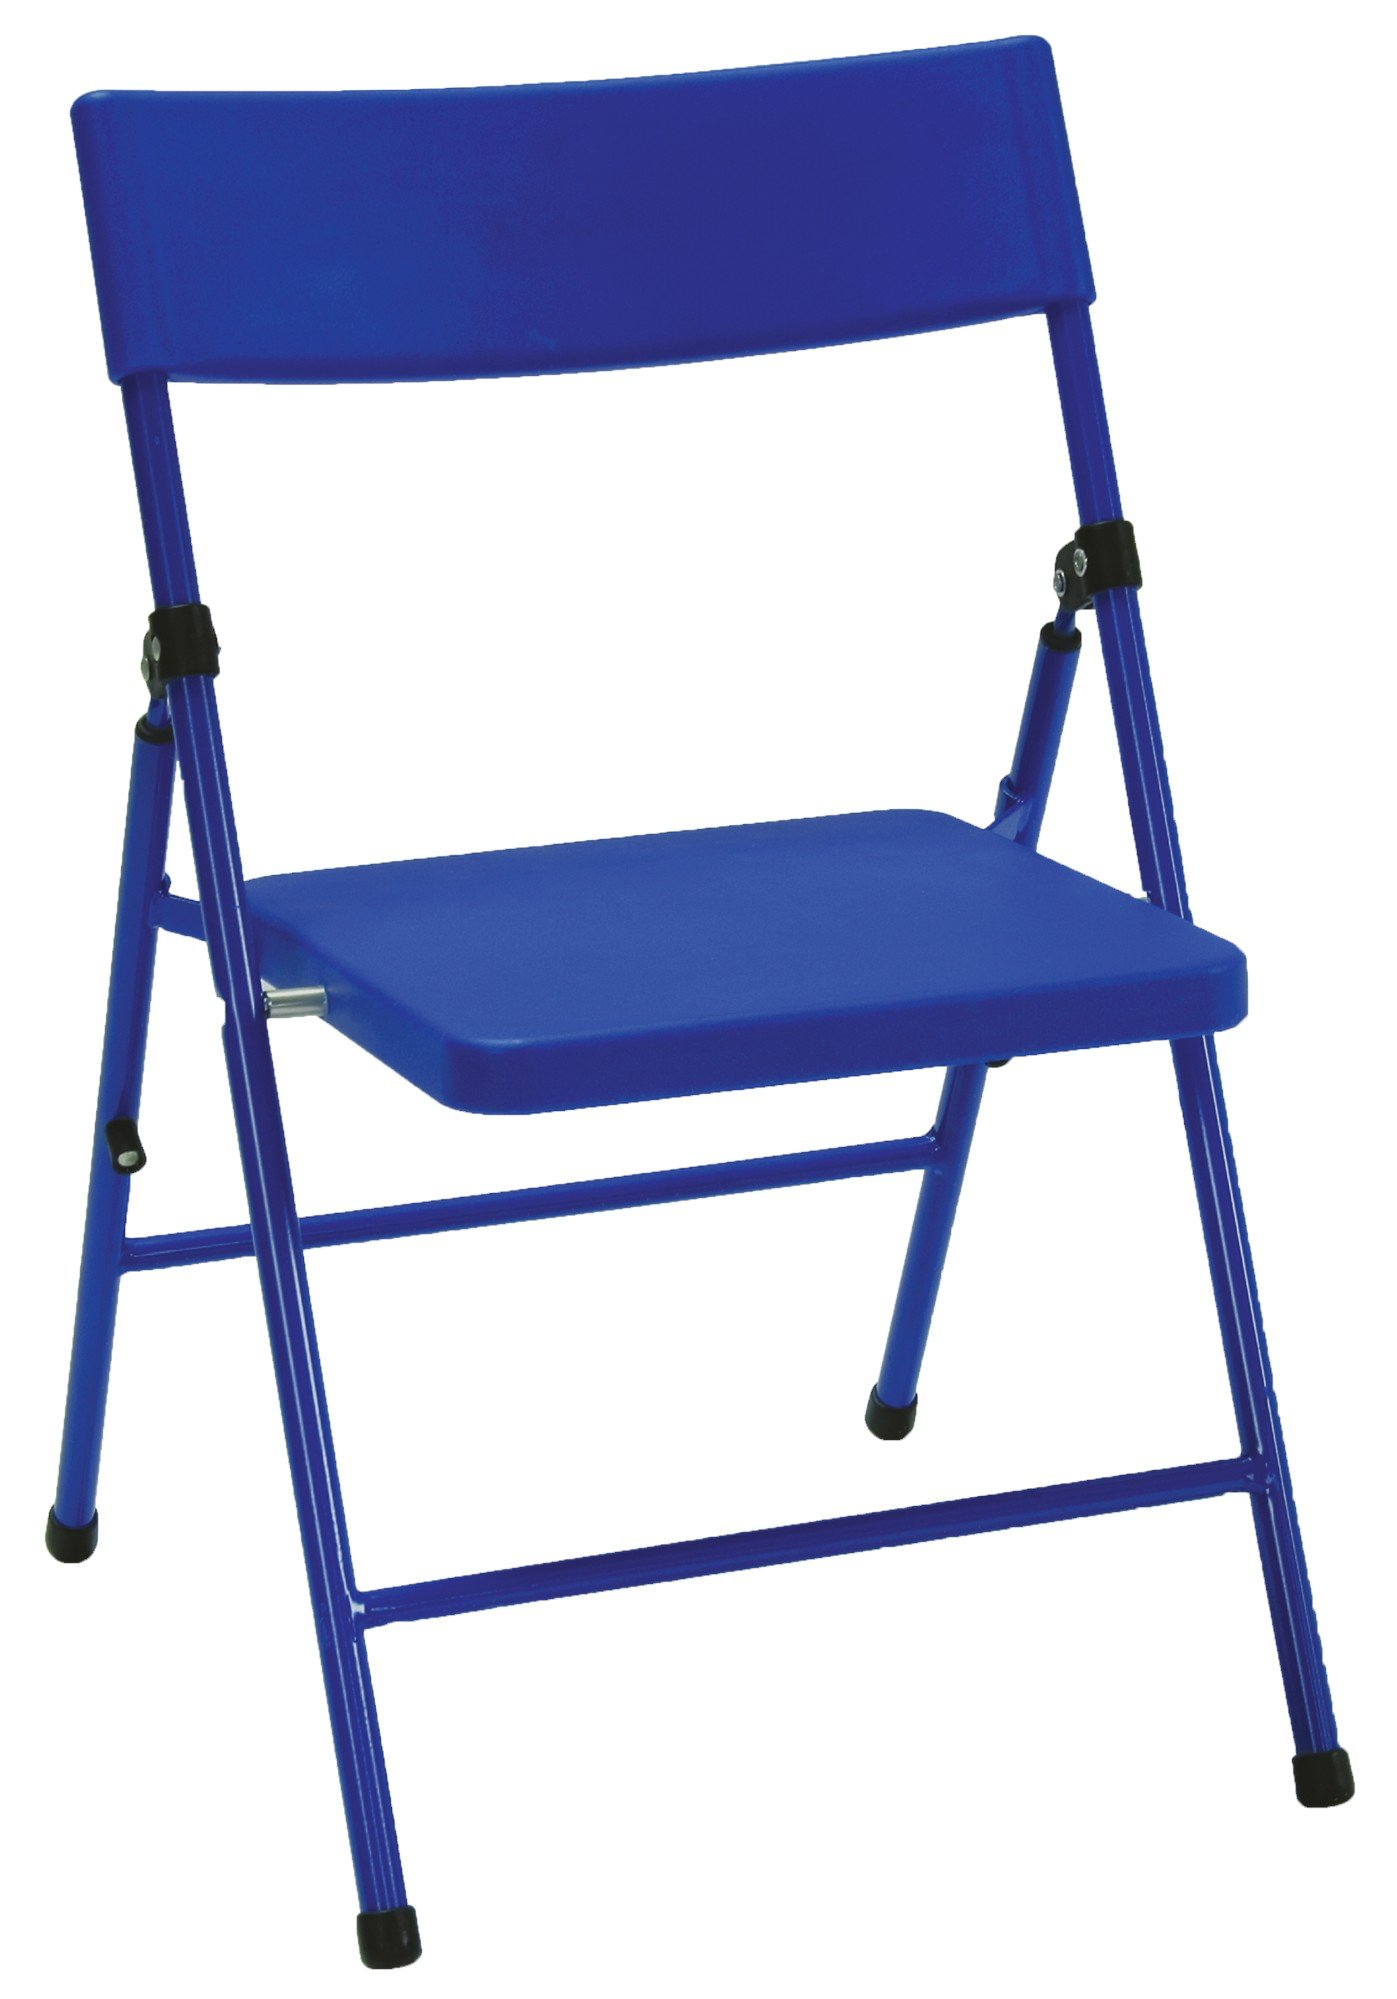 Cosco Safety First Children's Pinch-Free Folding Chair, Blue, (4-pack)